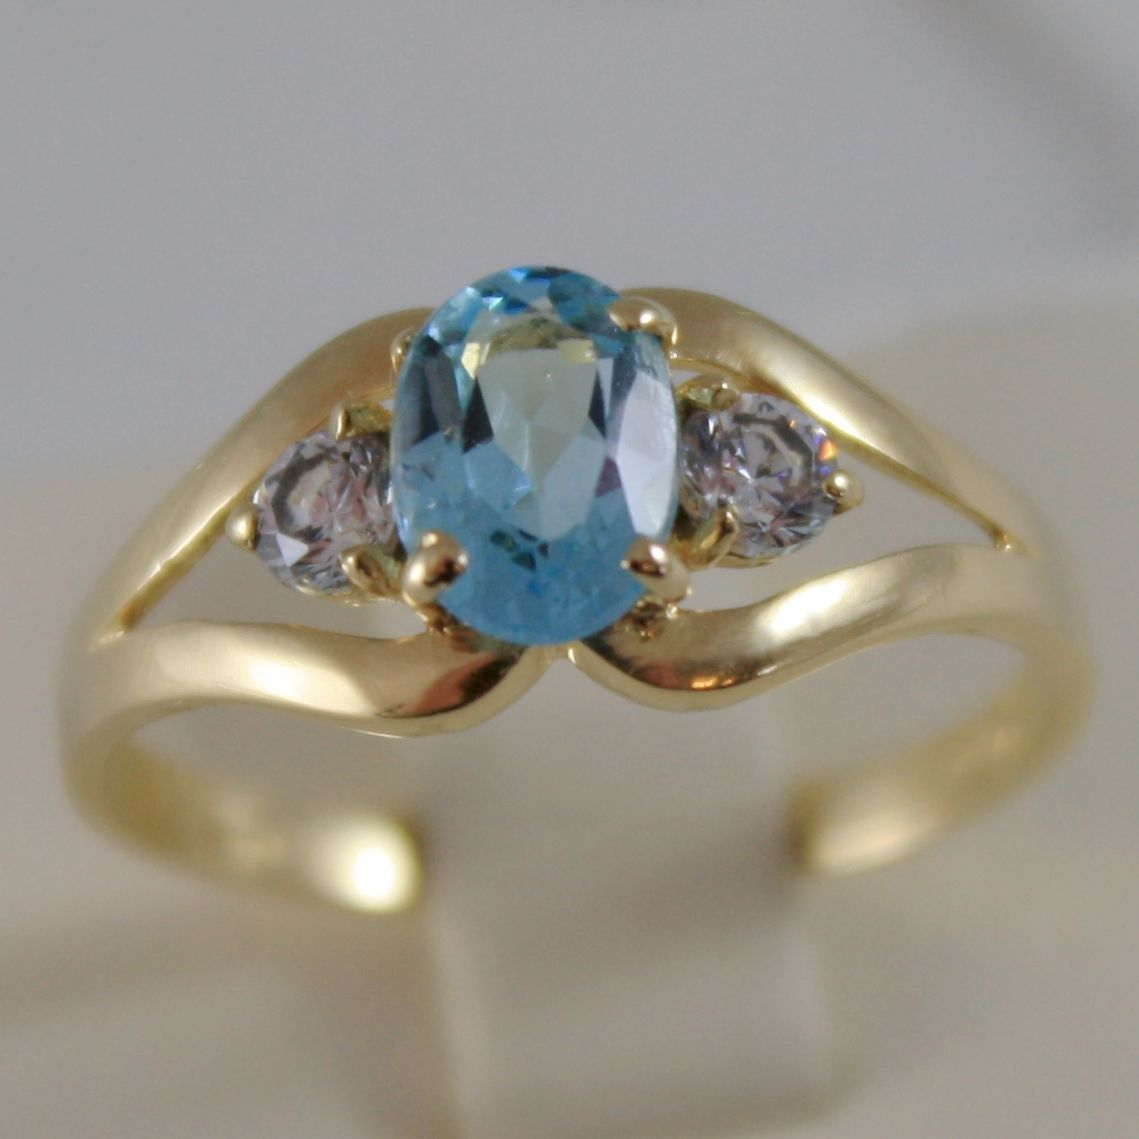 SOLID 18K YELLOW GOLD RING WITH OVAL BLUE TOPAZ AND ROUND ZIRCONIA MADE IN ITALY